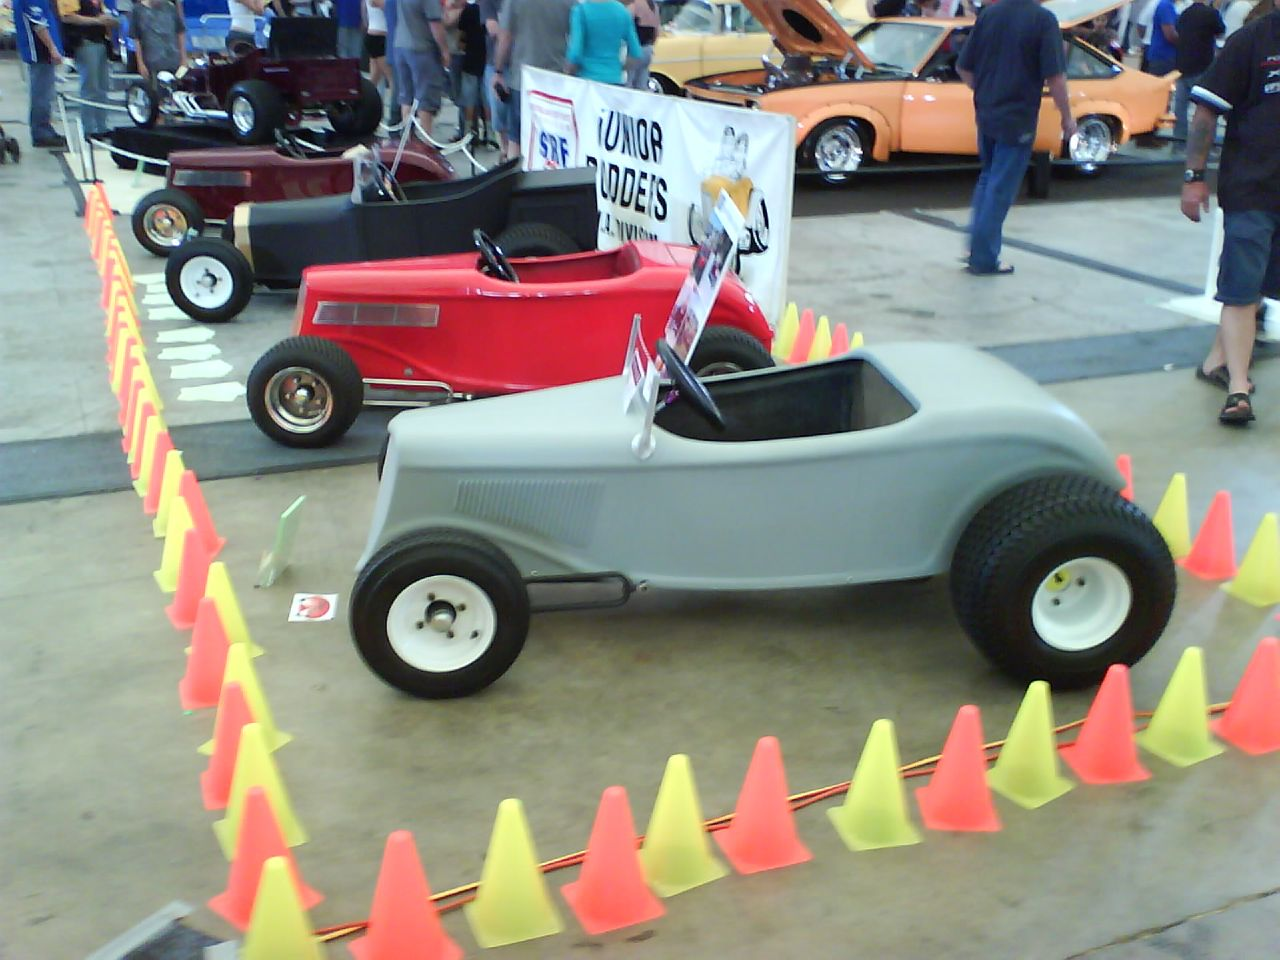 Racing Lawn Mower For Sale >> Projects - Mini Rod | The H.A.M.B.